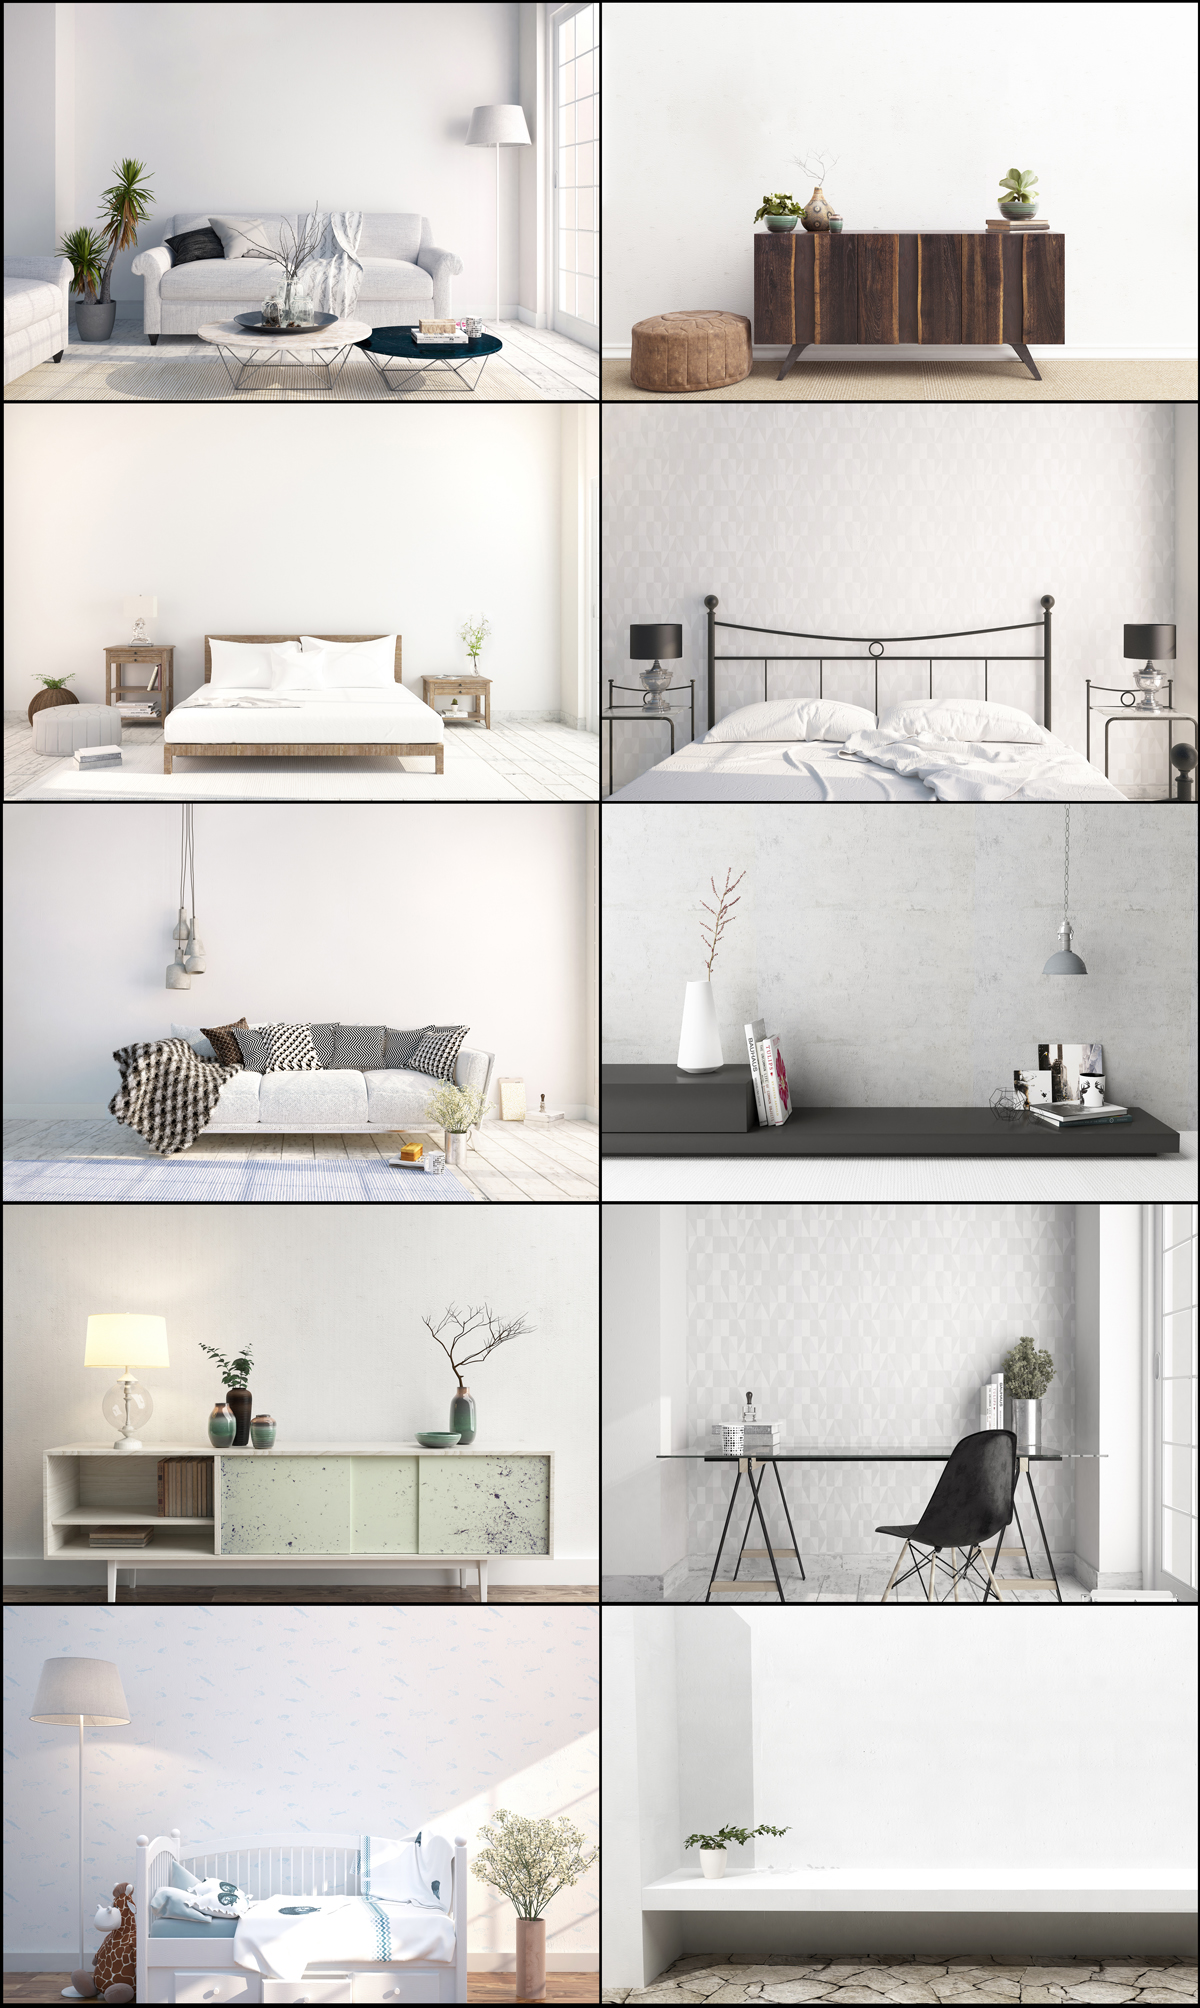 interior mockups bundle, stock photo example image 2